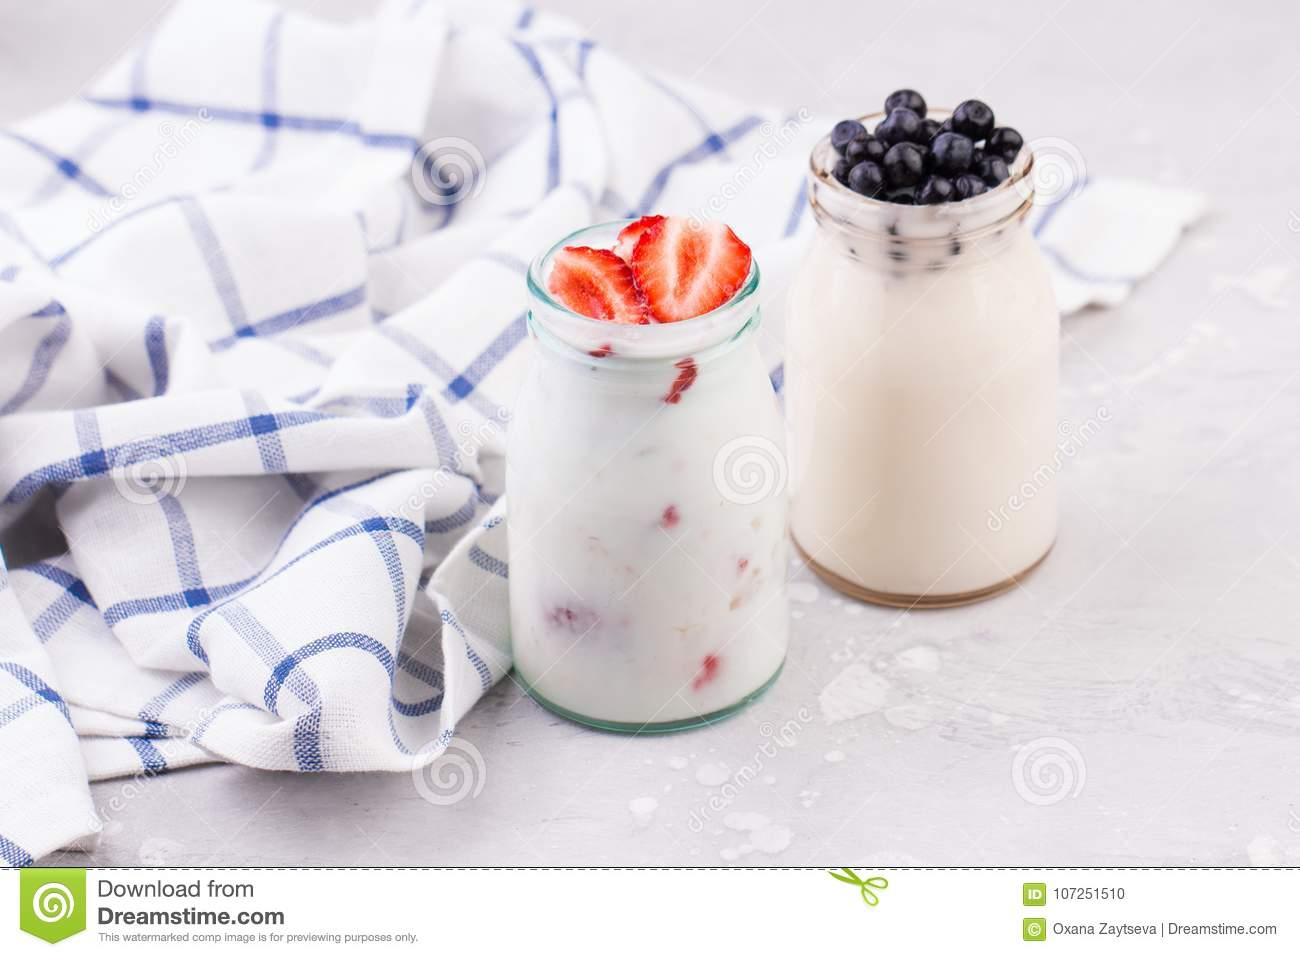 The glasses of milk shake with strawberries and blueberries on a blue checkered napkin on a white background